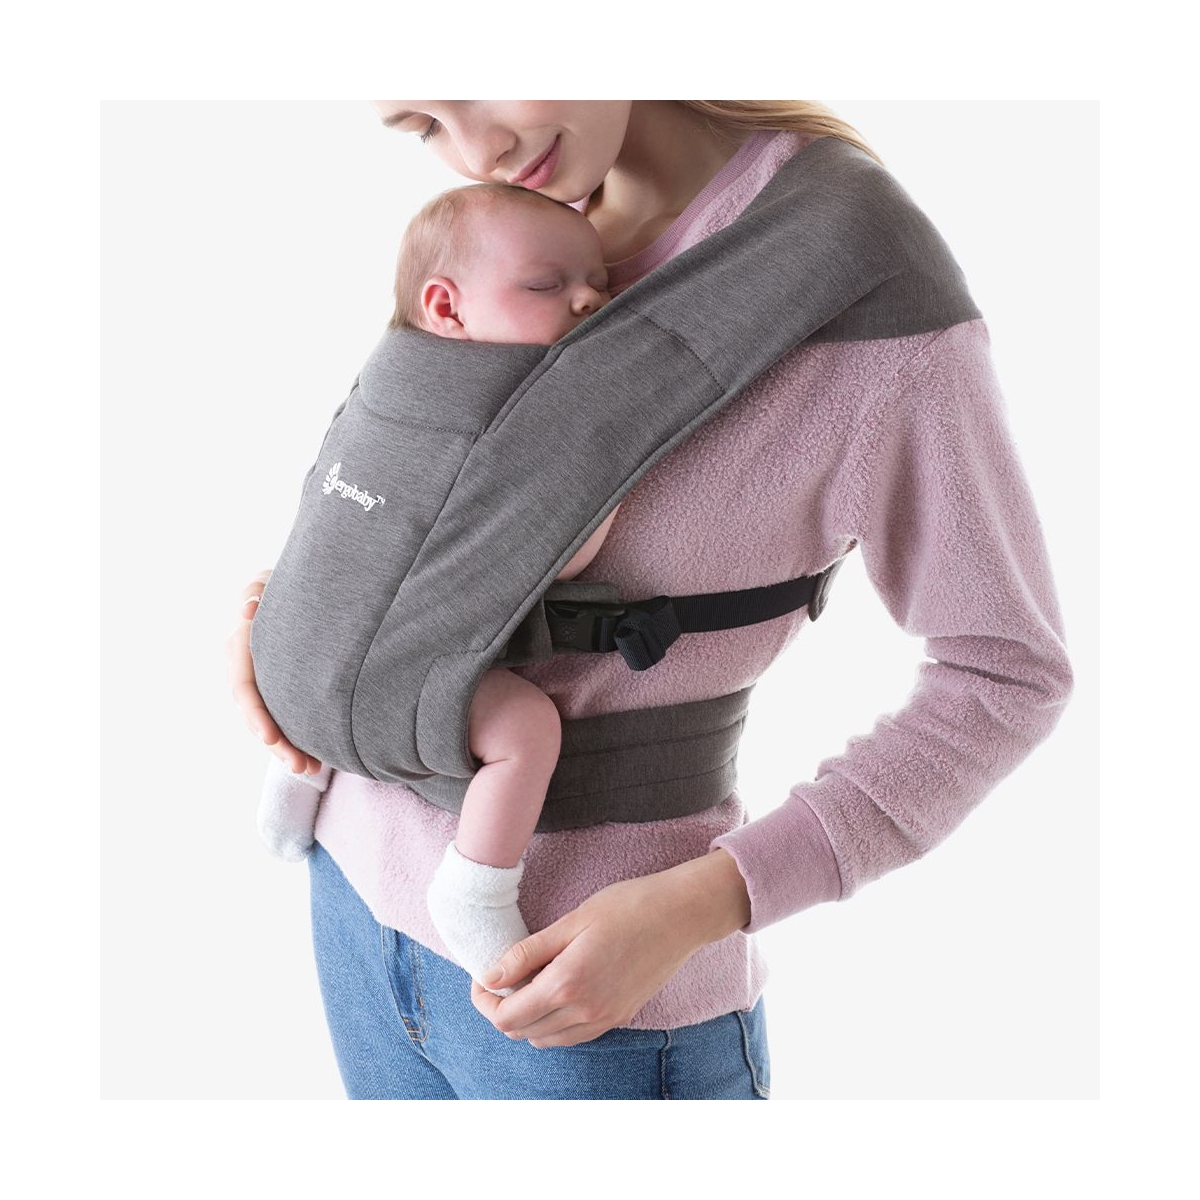 Ergobaby Embrace Baby Carrier-Heather Grey (2020)